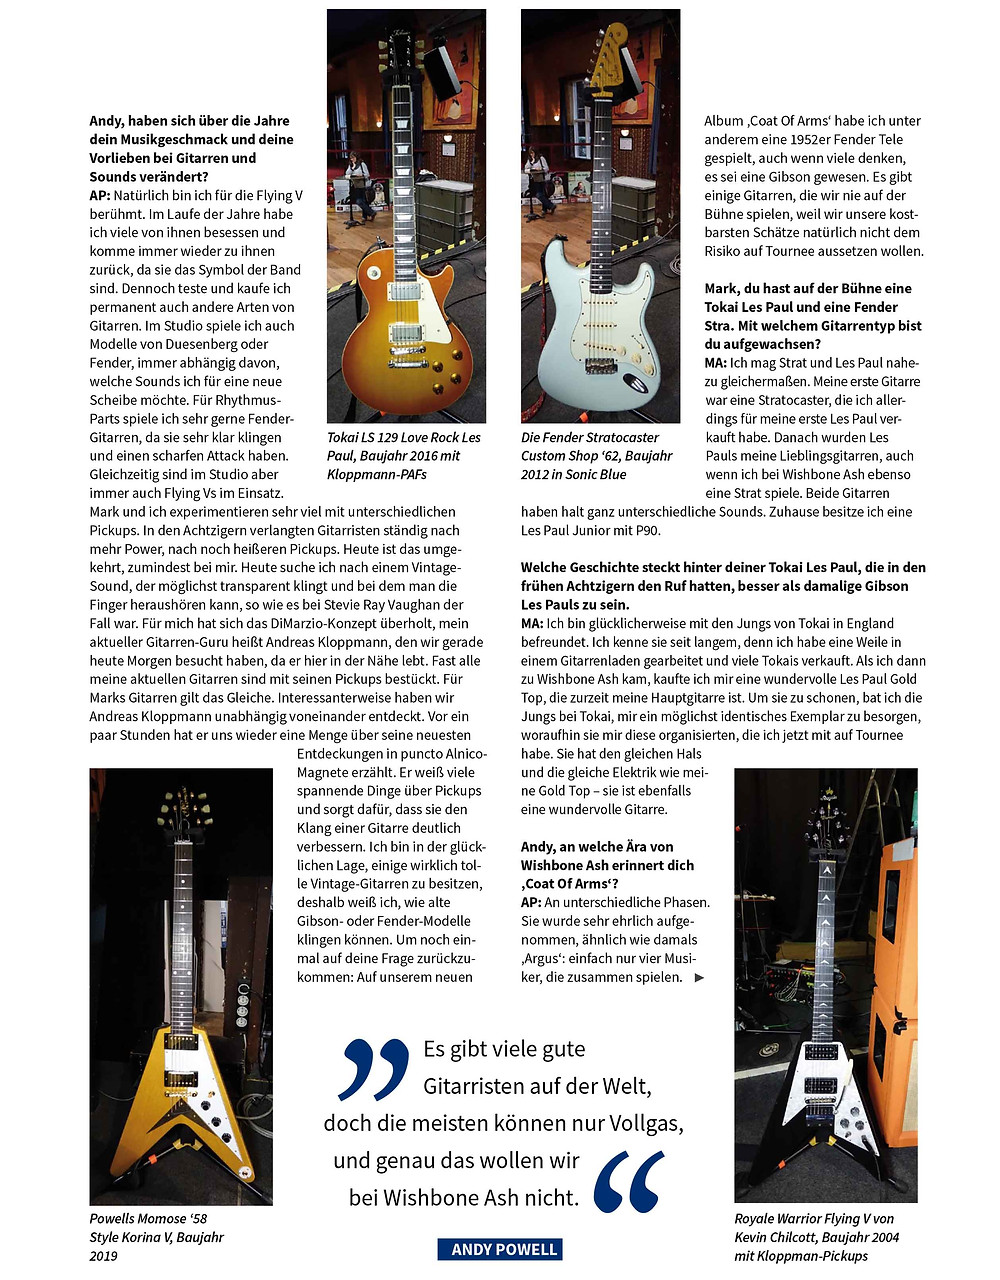 mark abrahams andy powell featured in german magazine gitarre and bass, guitar gear interview